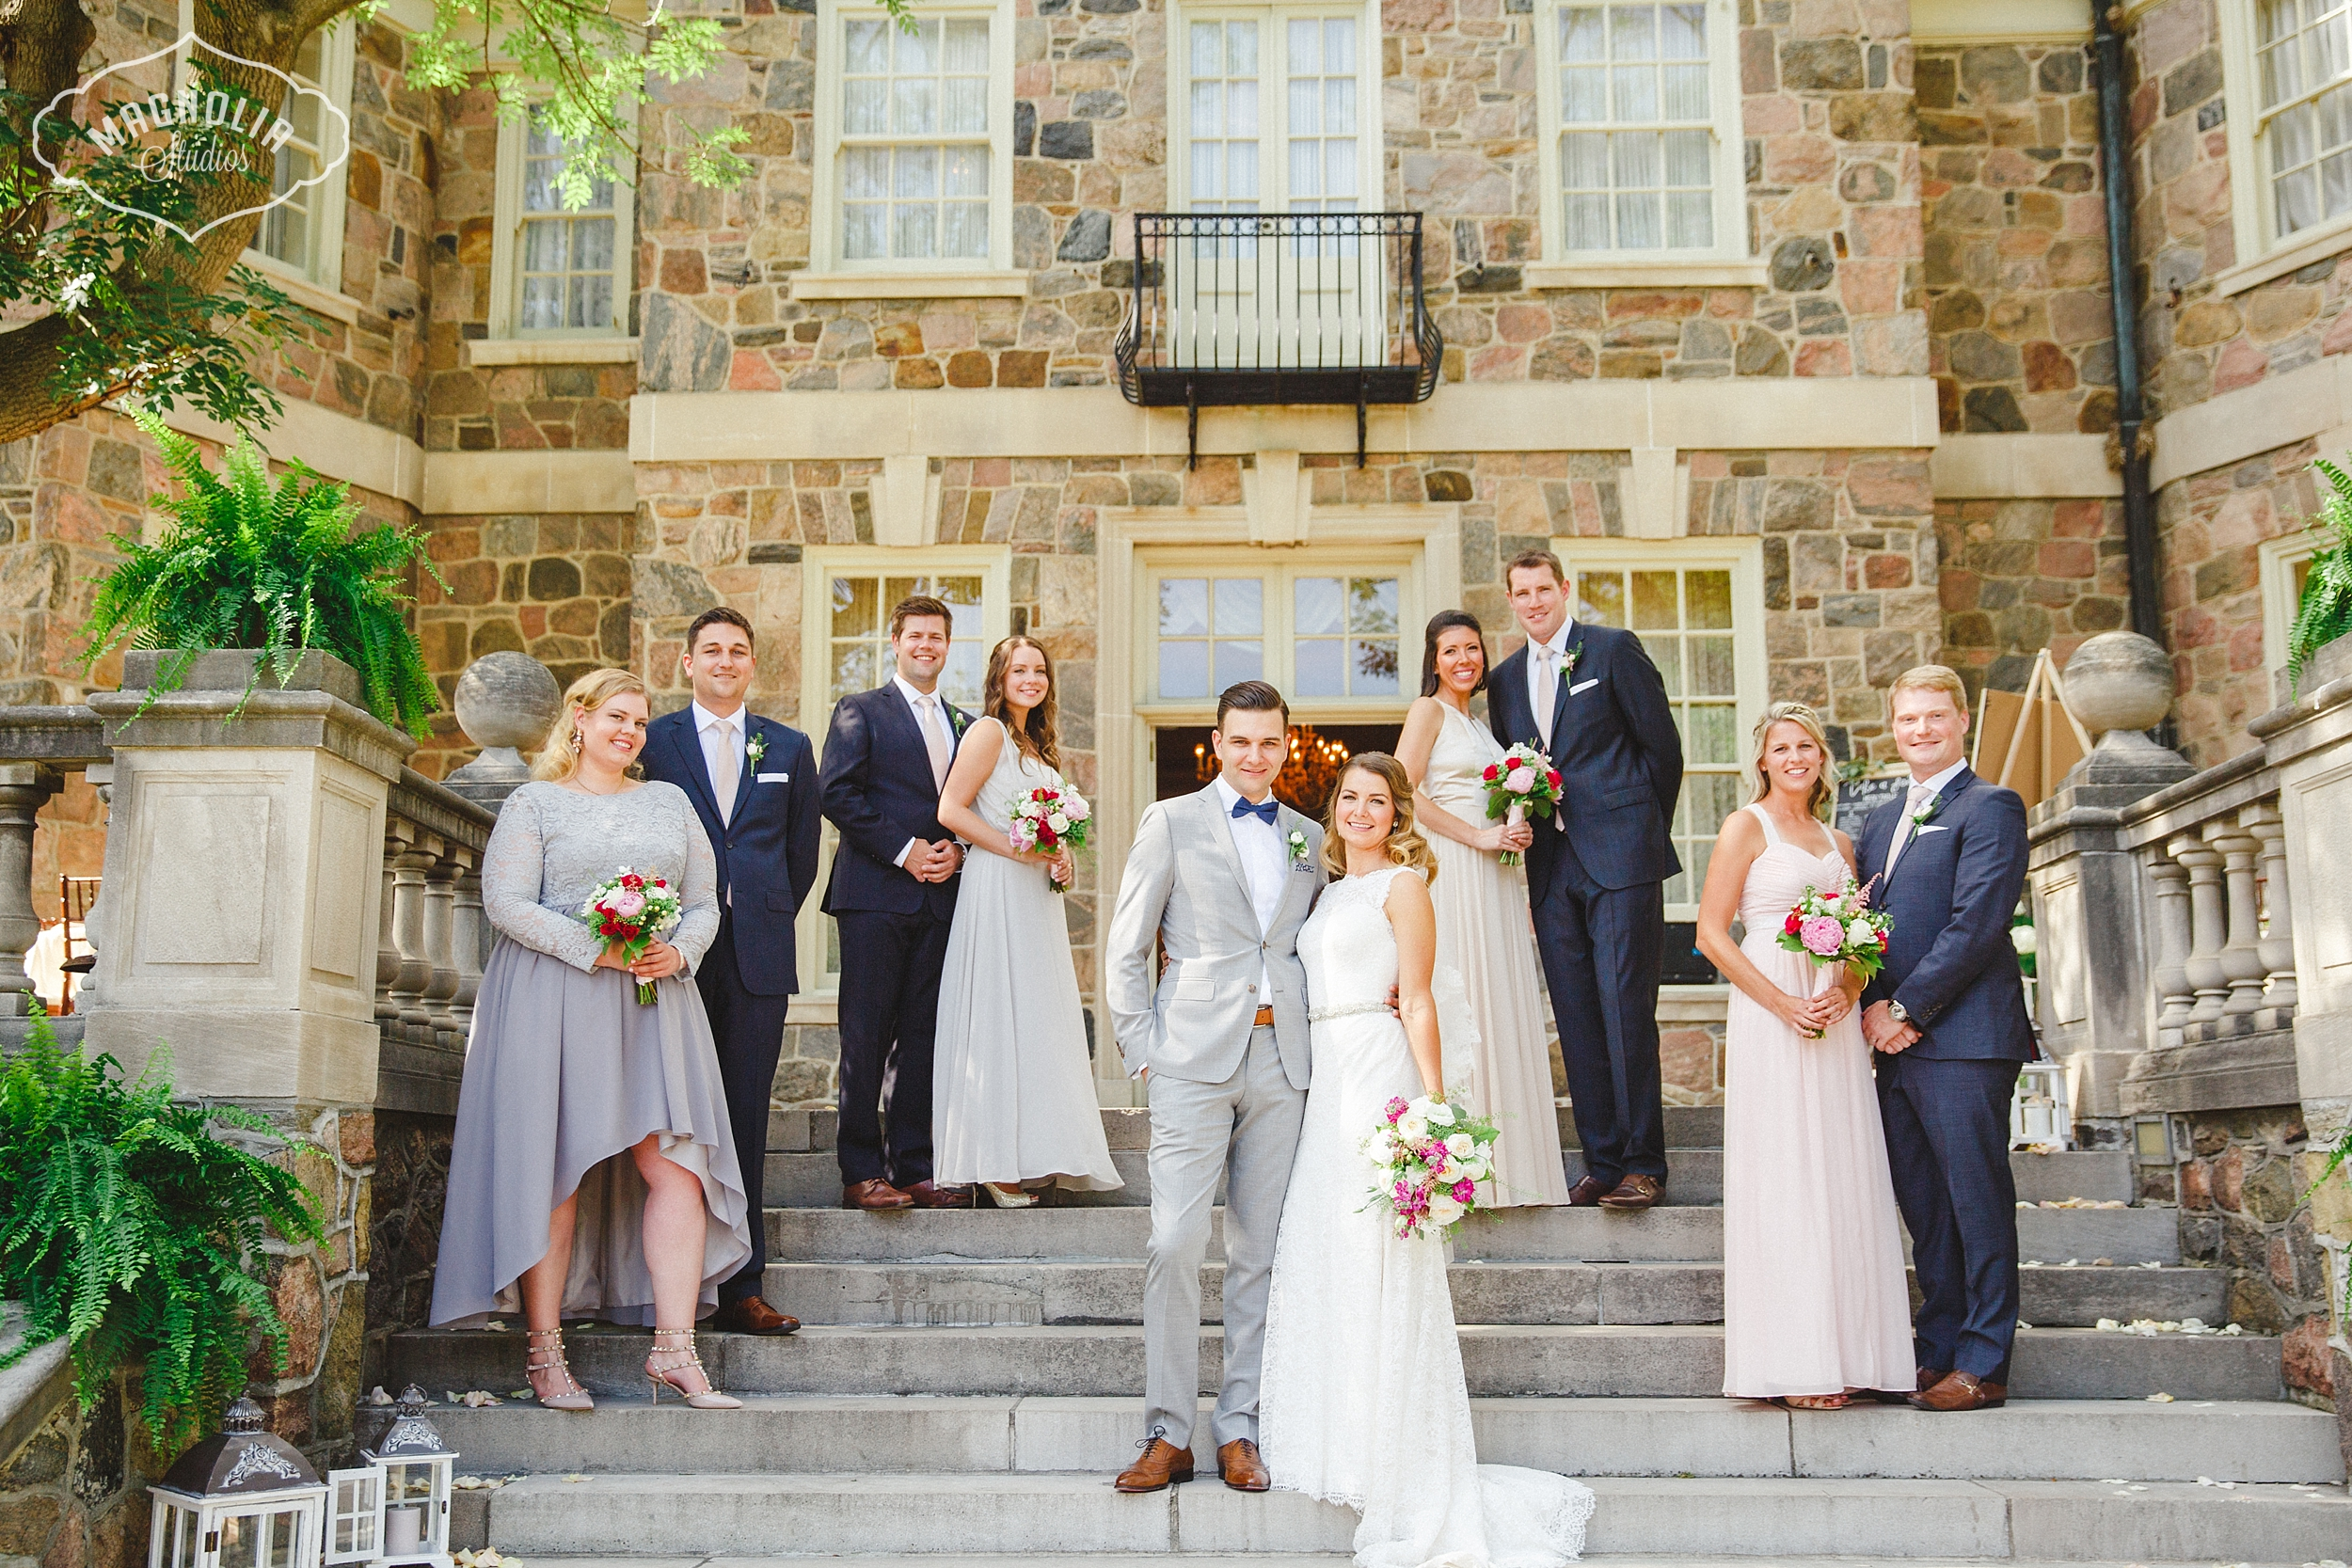 Whimsical and Colourful Graydon Hall Wedding